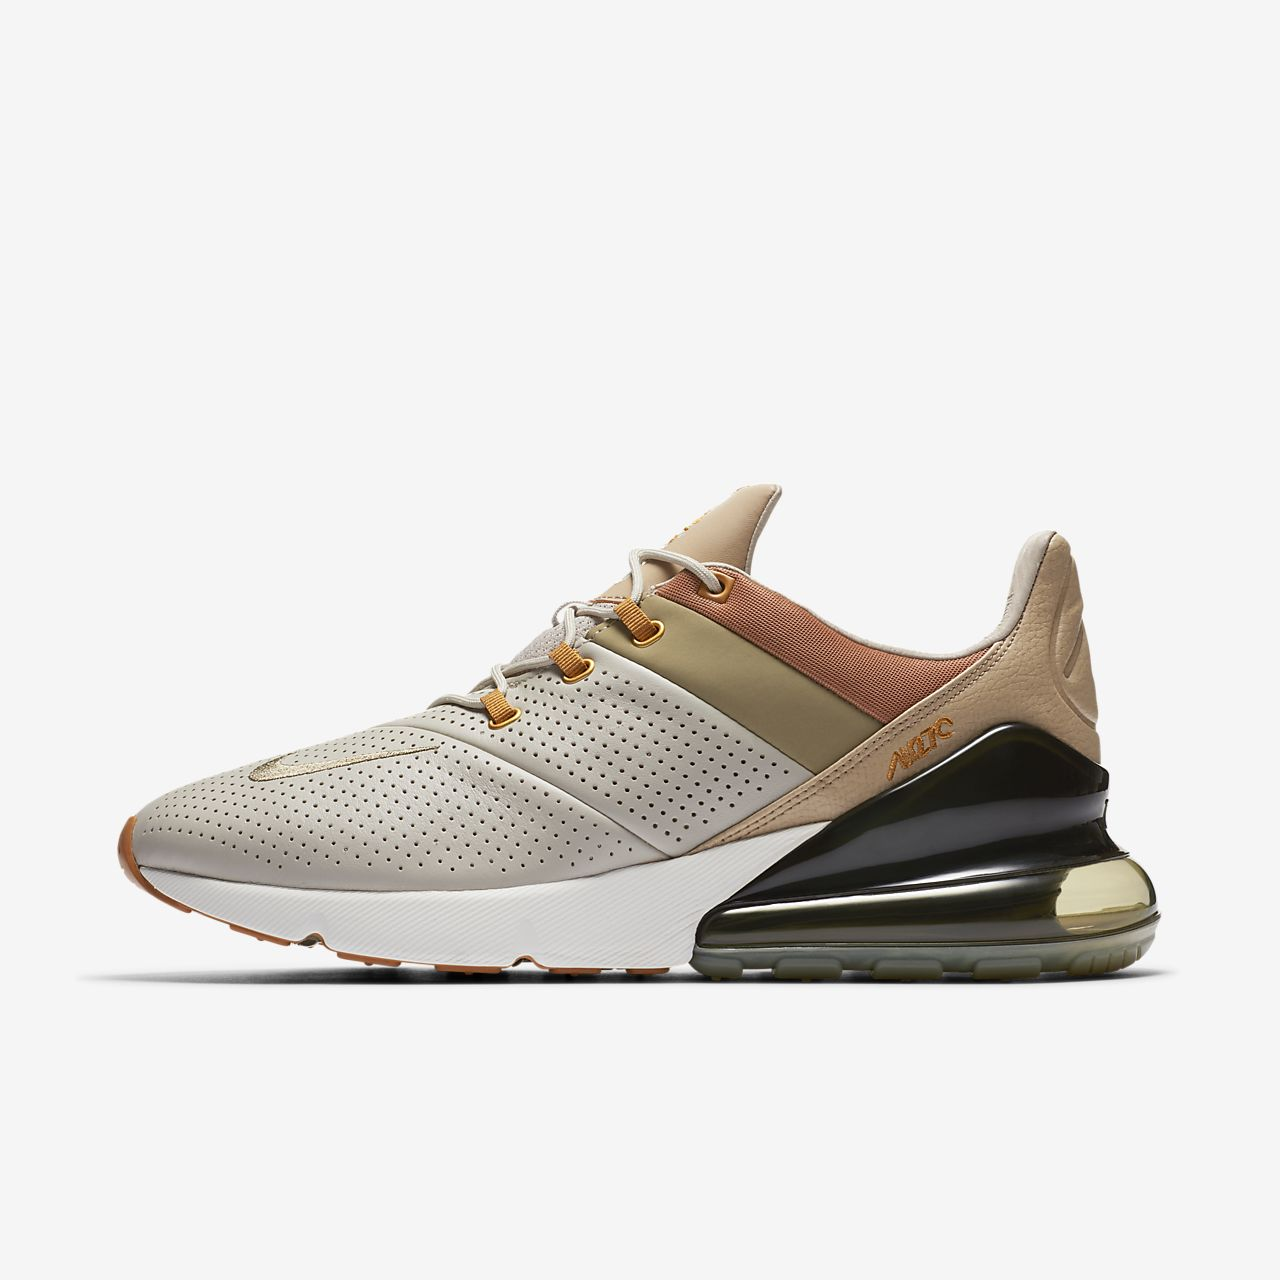 00334aa90c Nike Air Max 270 Premium Men's Shoe. Nike.com ZA